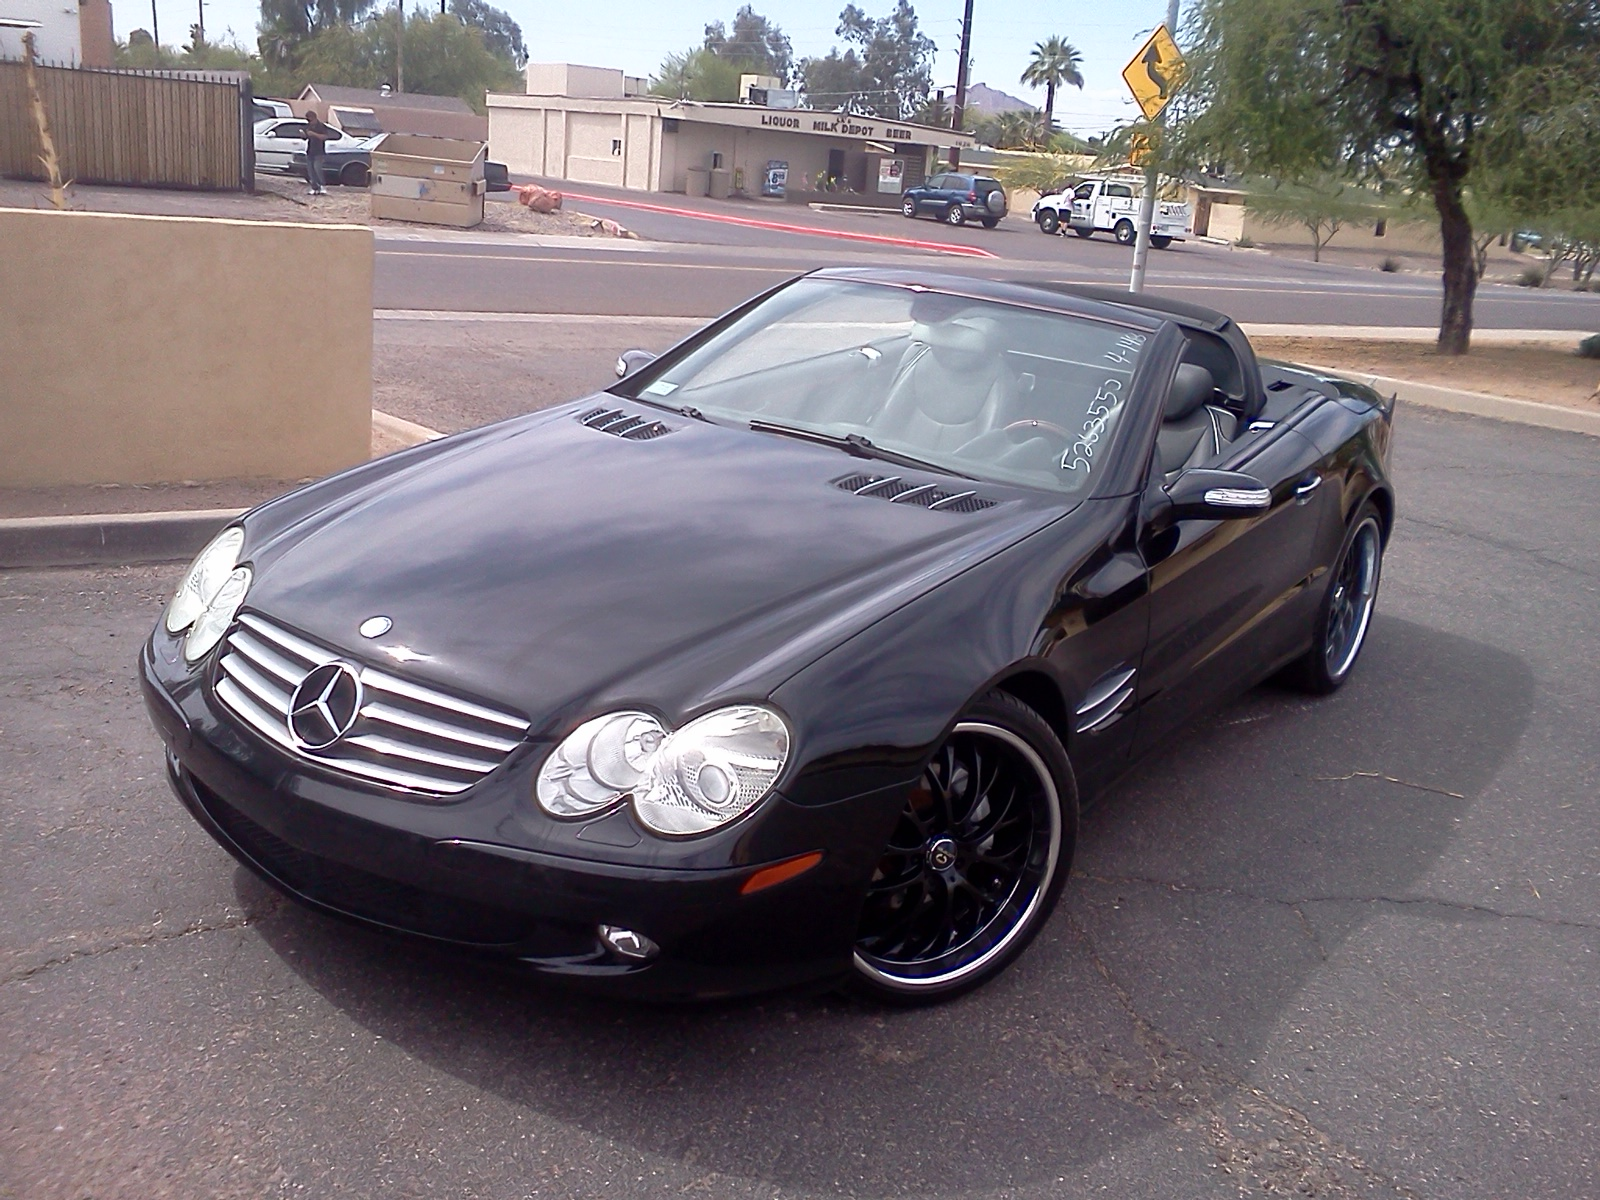 Scottsdale discount auto llc 2006 mercedes benz sl500 for 2006 mercedes benz sl500